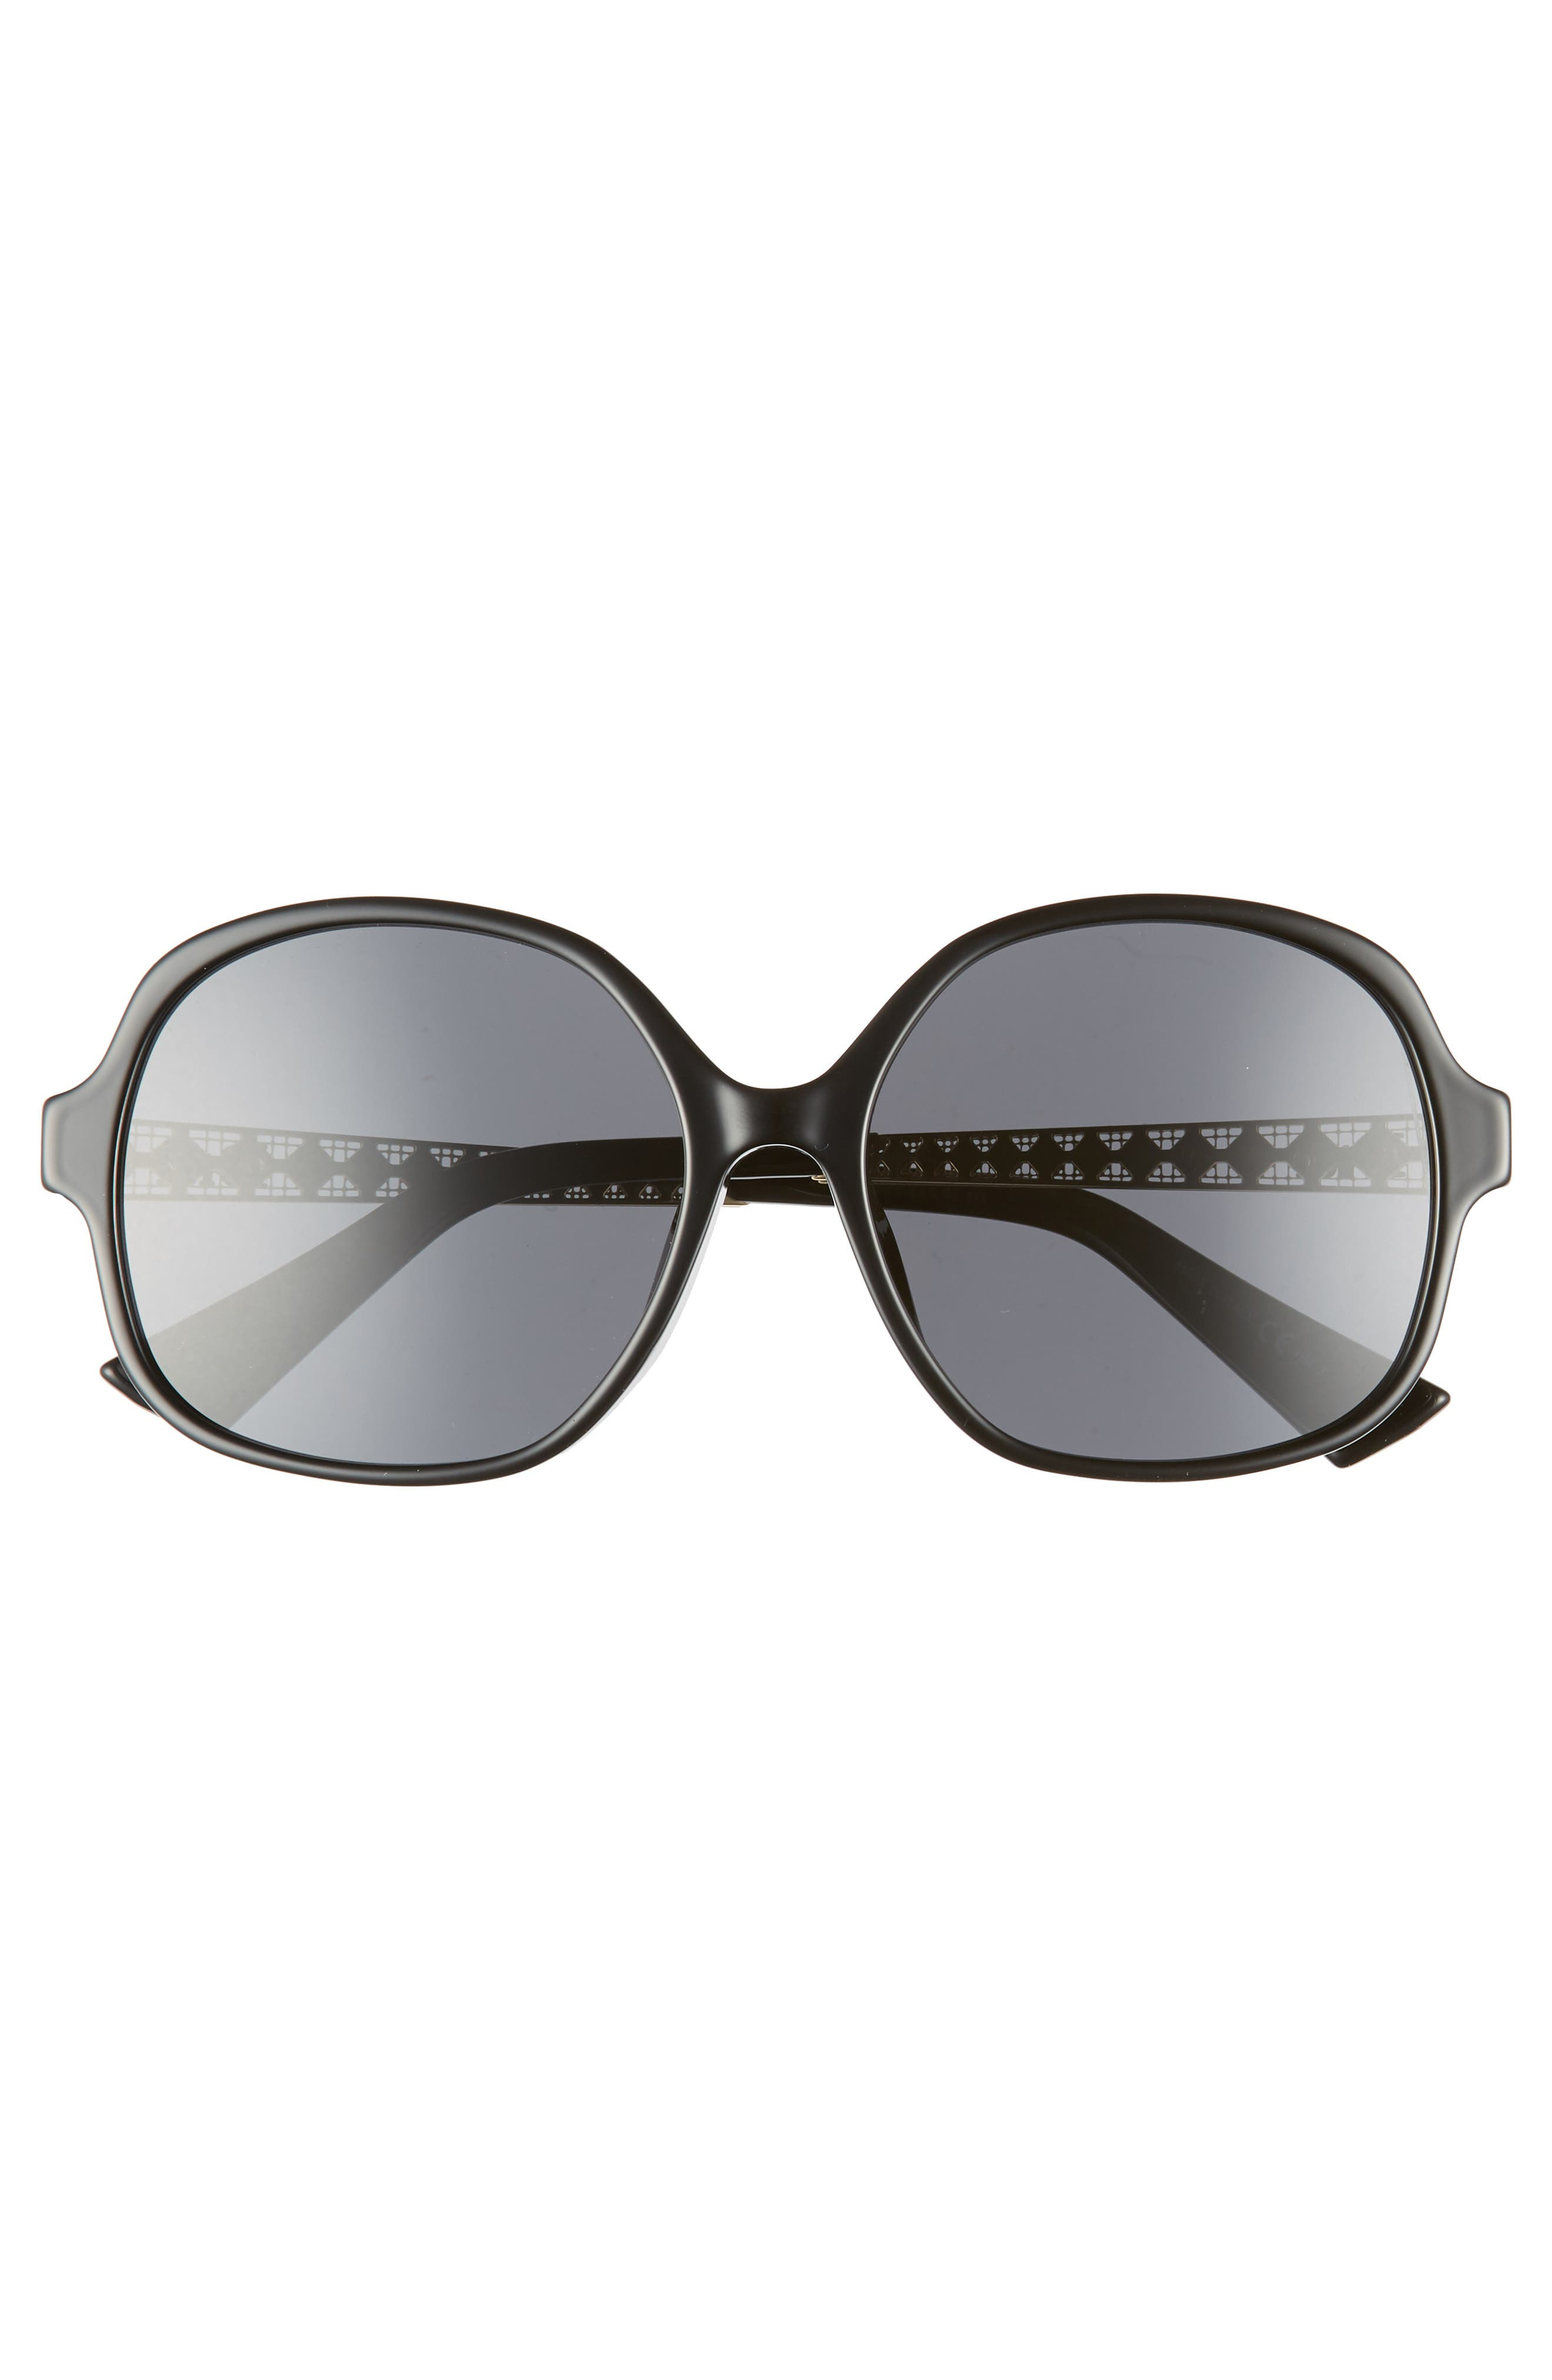 DIOR,                             Diorama 58mm Special Fit Round Sunglasses,                             Alternate thumbnail 3, color,                             BLACK